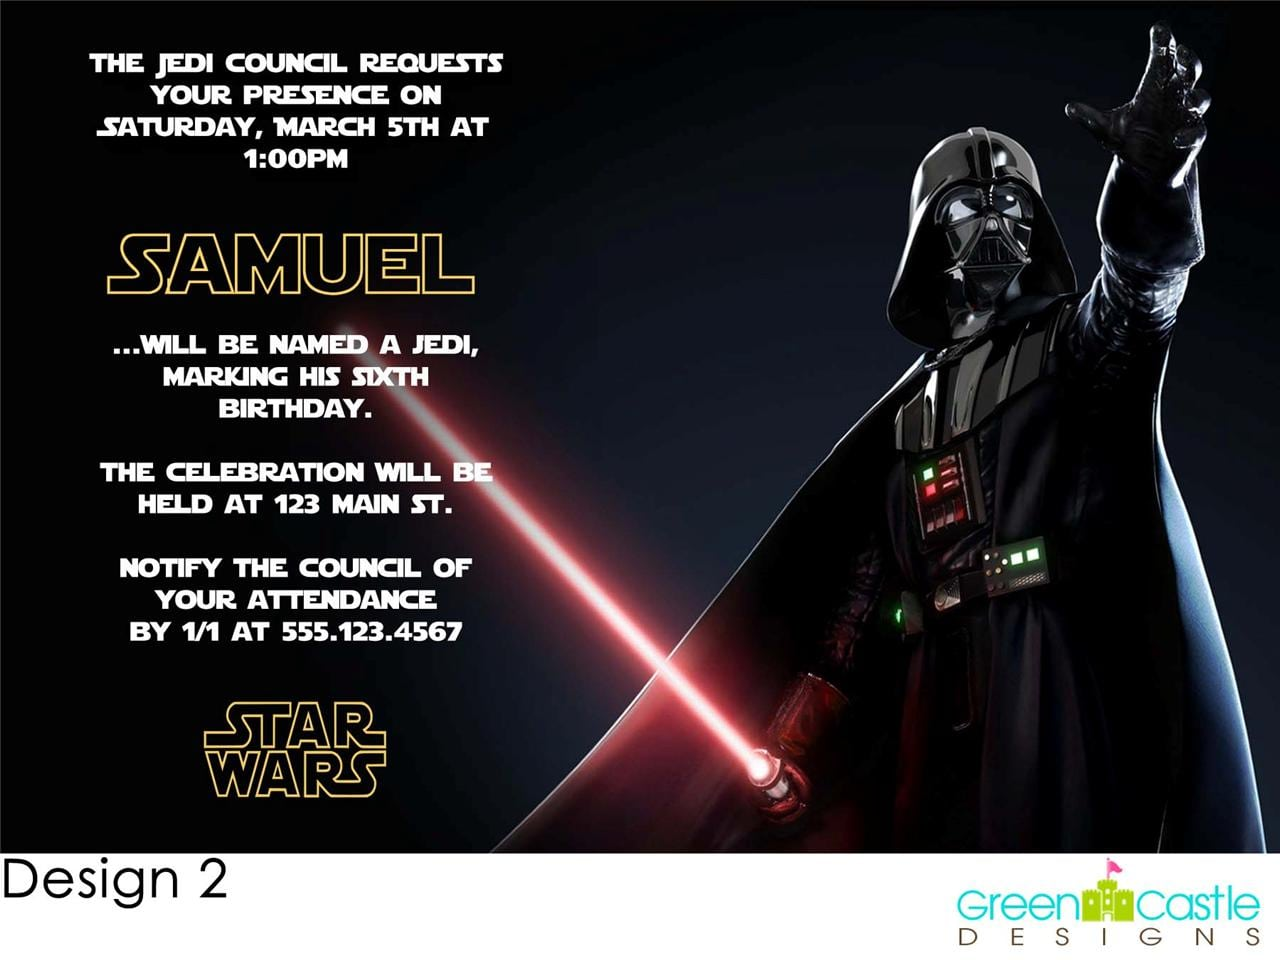 Star Wars Party Invitations Star Wars Party Invitations With Some